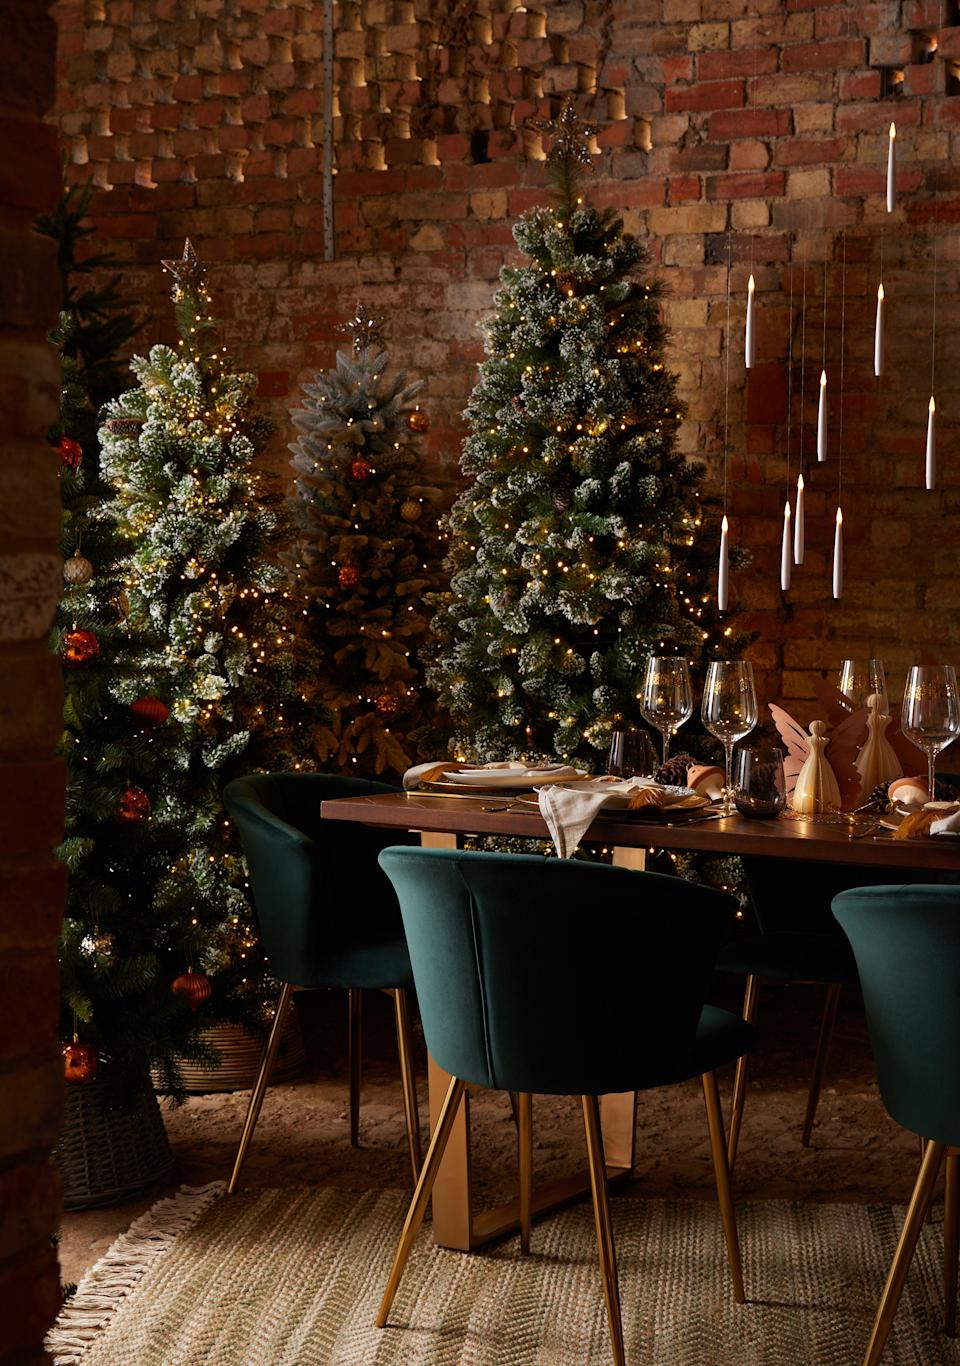 """<p><strong>Dunelm's</strong><strong> <a href=""""https://www.housebeautiful.com/uk/christmas/"""" rel=""""nofollow noopener"""" target=""""_blank"""" data-ylk=""""slk:Christmas"""" class=""""link rapid-noclick-resp"""">Christmas</a> 2</strong><strong>021 collection is filled with sustainable paper decorations, reusable wrapping paper and comforting accessories perfect for winter. </strong><br></p><p>As is typical during 'Christmas in July', the home furnishings retailer has just unveiled its festive range of decorations, trees and gifting ideas alongside three key trends: Winter Solstice, Christmas Tropics and Nordic Nomad.<br></p><p>'This year, we've taken steps to create a sustainable Christmas for every home, removing glitter from all our decorations and foliage, and using alternative techniques, such as beading and sequin embellishment, to reduce our use of micro plastics without compromising on quality,' says Debbie Drake, <a href=""""https://go.redirectingat.com?id=127X1599956&url=https%3A%2F%2Fwww.dunelm.com%2F&sref=https%3A%2F%2Fwww.housebeautiful.com%2Fuk%2Fdecorate%2Flooks%2Fg37110872%2Fdunelm-christmas%2F"""" rel=""""nofollow noopener"""" target=""""_blank"""" data-ylk=""""slk:Dunelm"""" class=""""link rapid-noclick-resp"""">Dunelm</a>'s Design Director.</p><p>'We've also got a wonderful range of paper decorations of various sizes, shapes and colours, ensuring there is something to suit every festive colour scheme. And we've eliminated 400kg of plastic from our wrapping paper, which is the weight of a small Highland cow! Meanwhile, our range of festive haberdashery fabrics, inspired by Japanese furoshiki, is a great alternative to wrapping paper.'</p><p>We might be in the middle of a summer heatwave, but it's never too early to get a sneak peek at what's to come. Available to buy from Sunday 12th September, why not take a look at some of Dunelm's Christmas decoration highlights below... </p>"""